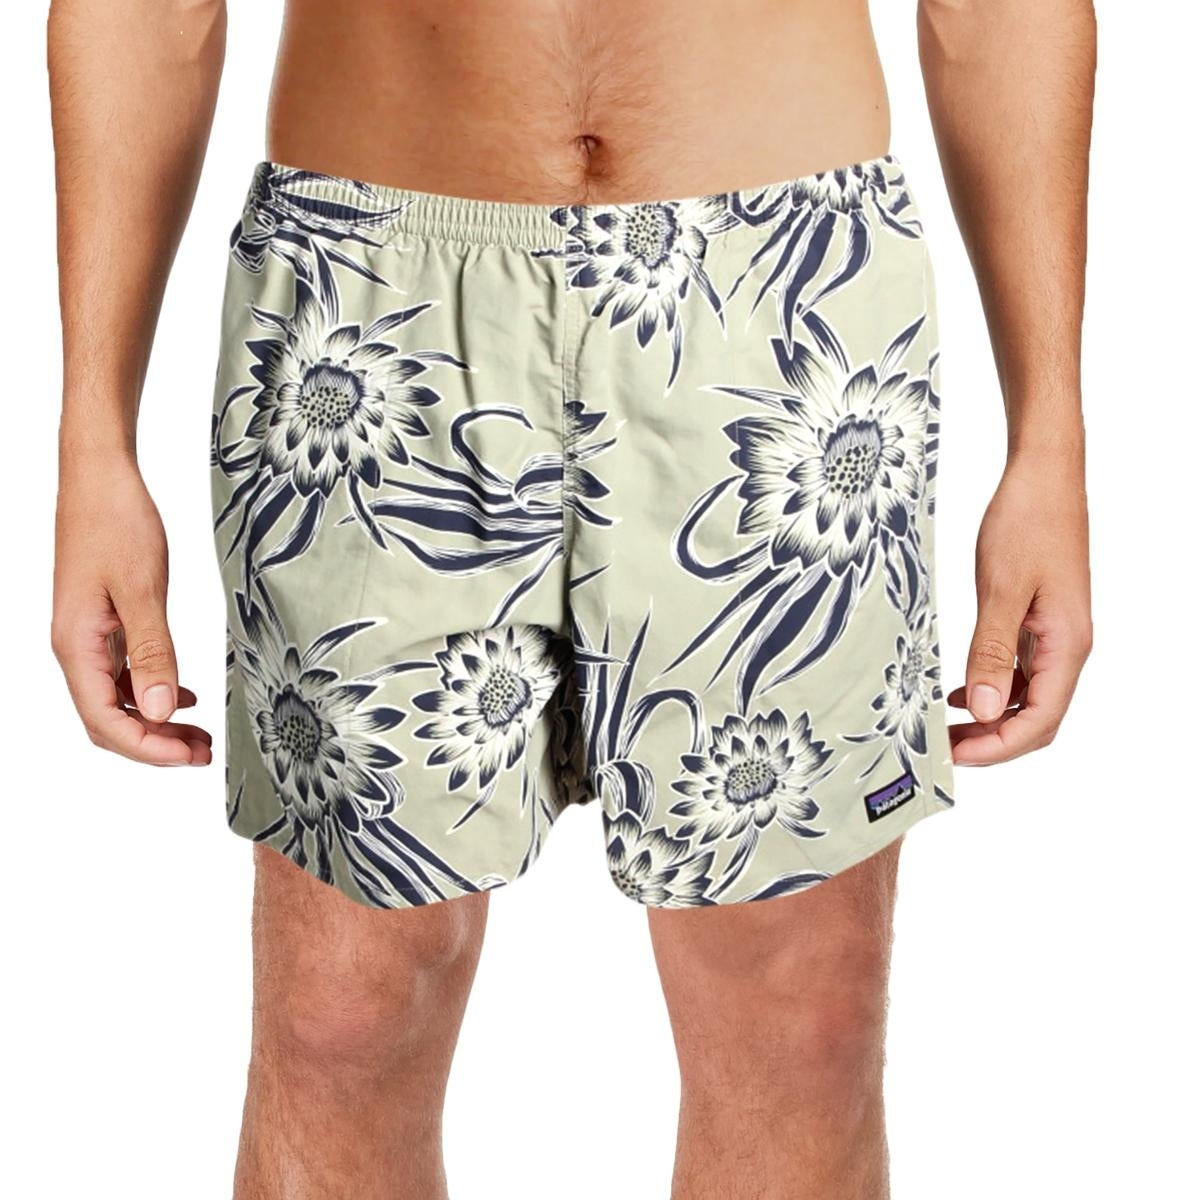 9bdca2d778 Shop Patagonia Mens Baggies Floral Print Woven Swim Trunks - Free Shipping  On Orders Over $45 - Overstock - 27078984